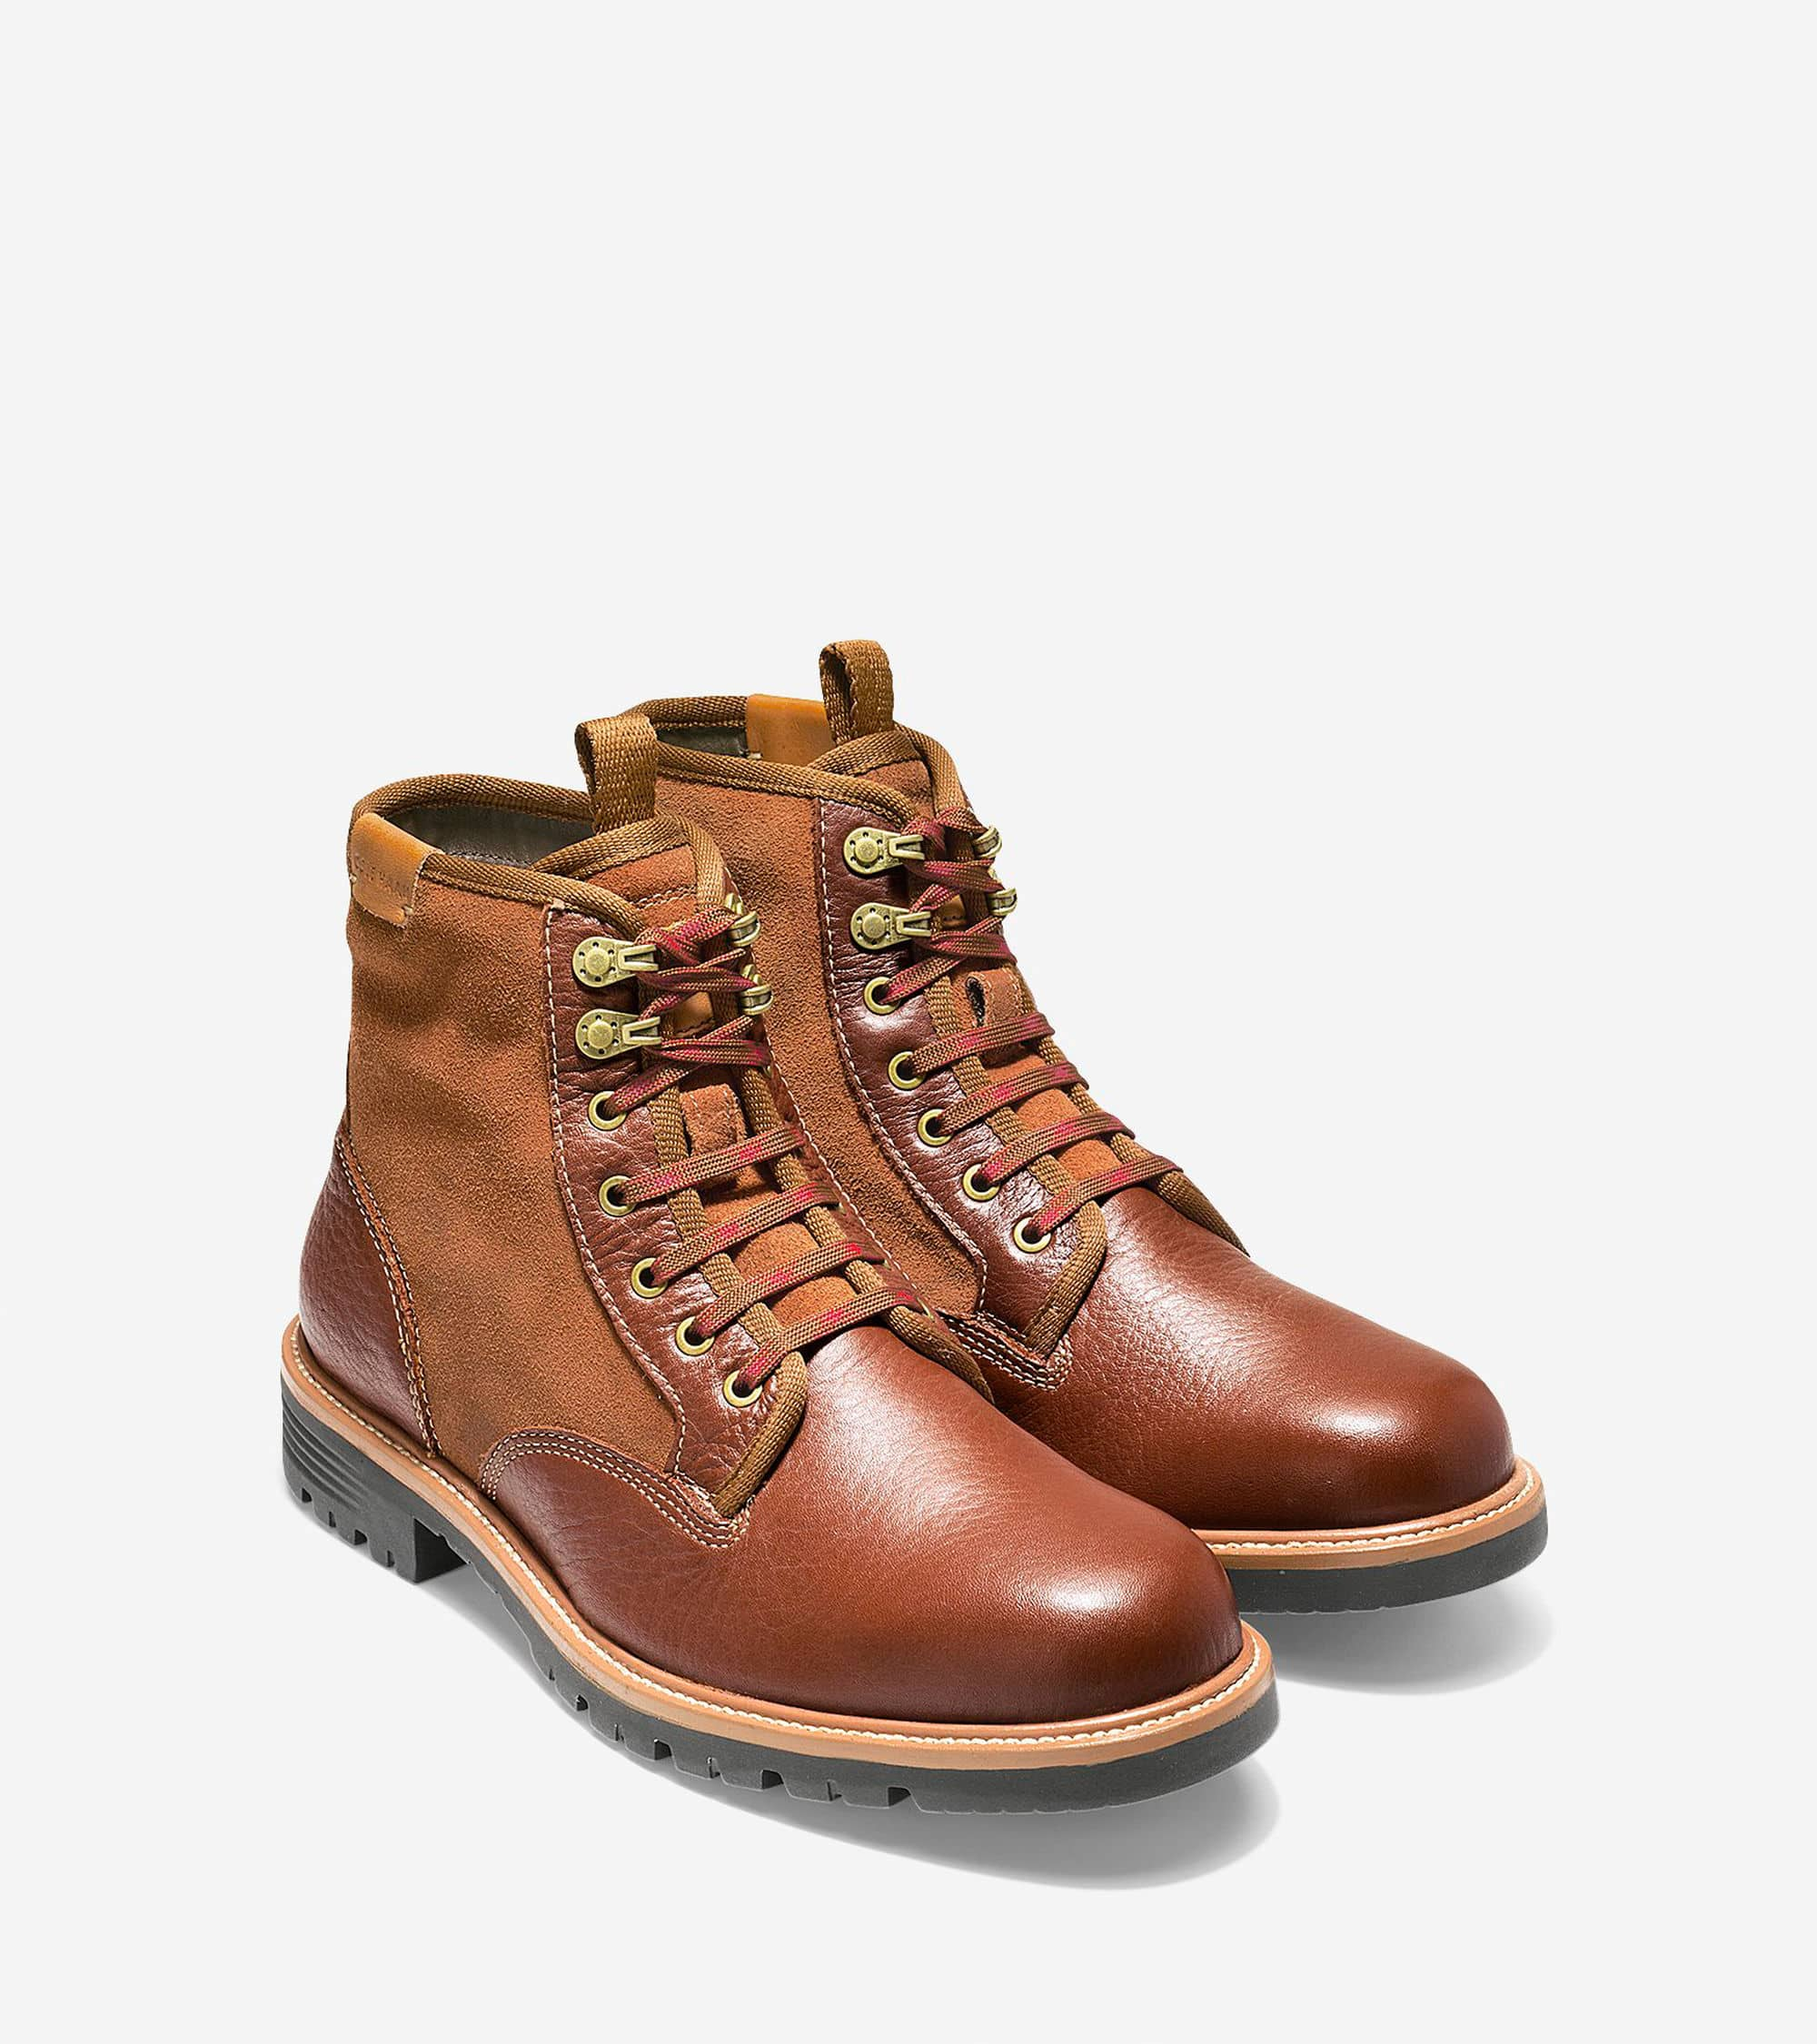 Cole Haan: Up To 50% Off + Extra 10% Off Plus Free Shipping